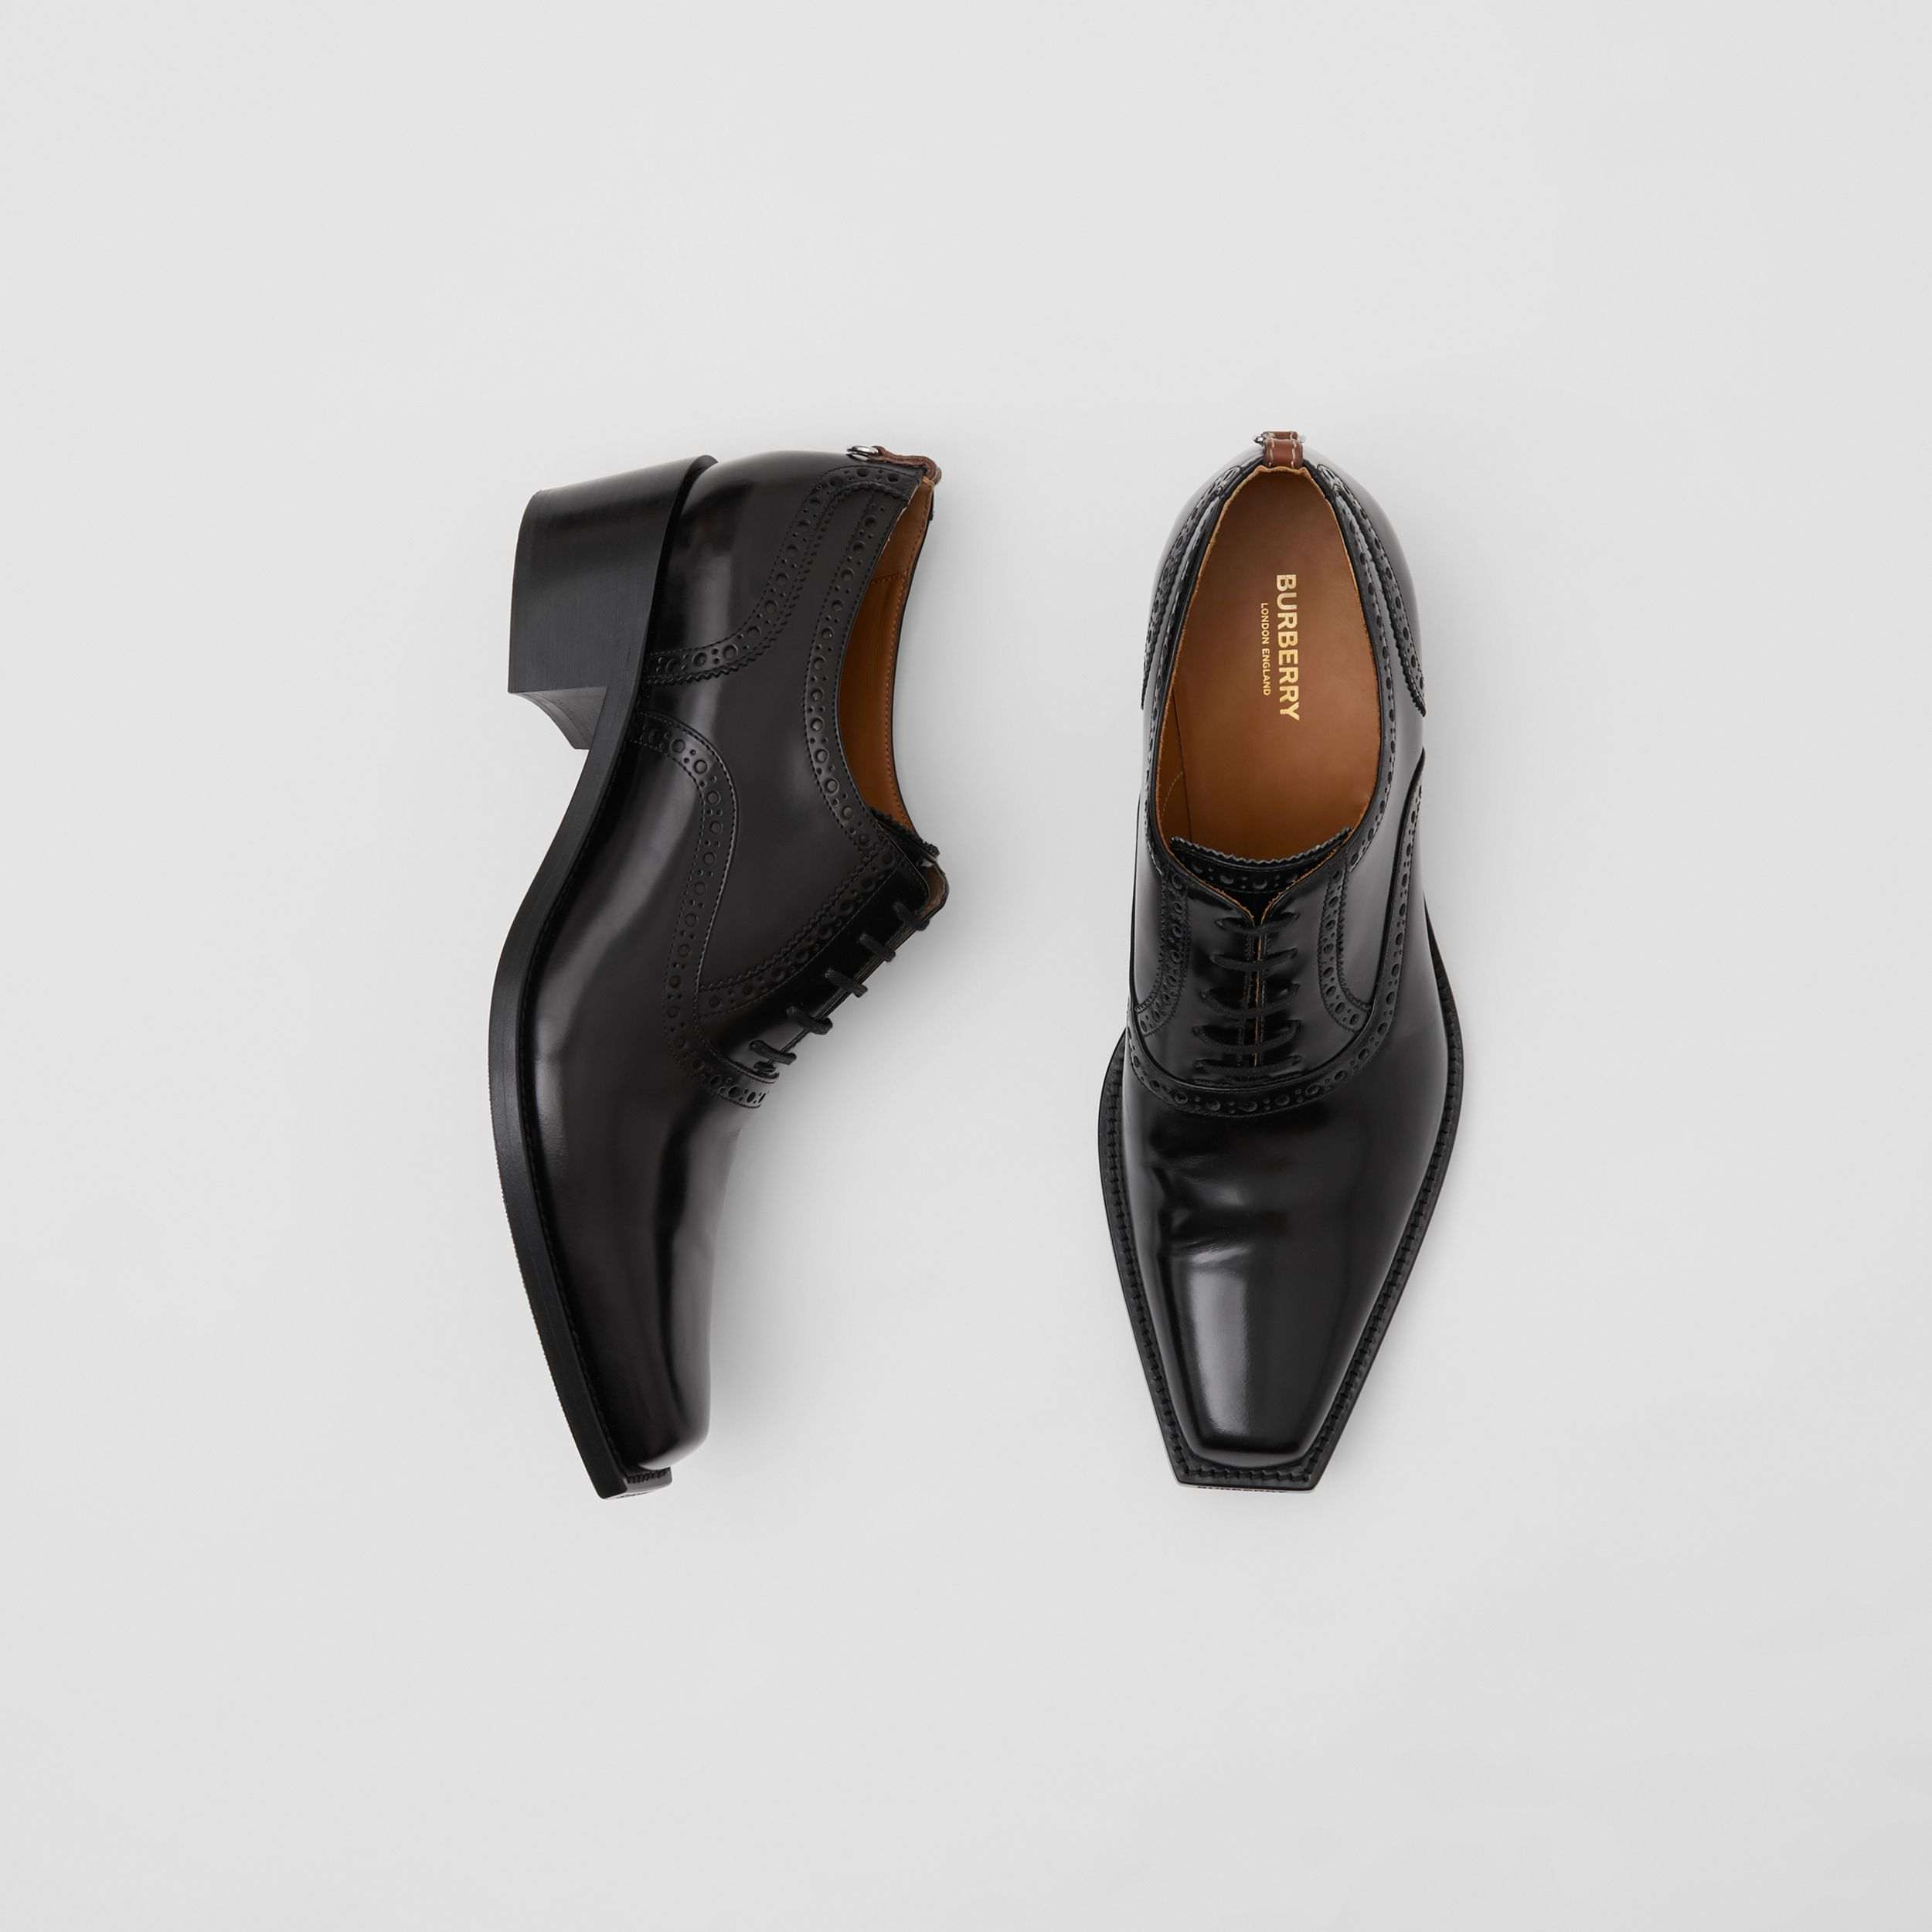 D-ring Detail Leather Heeled Oxford Brogues in Black | Burberry - 1